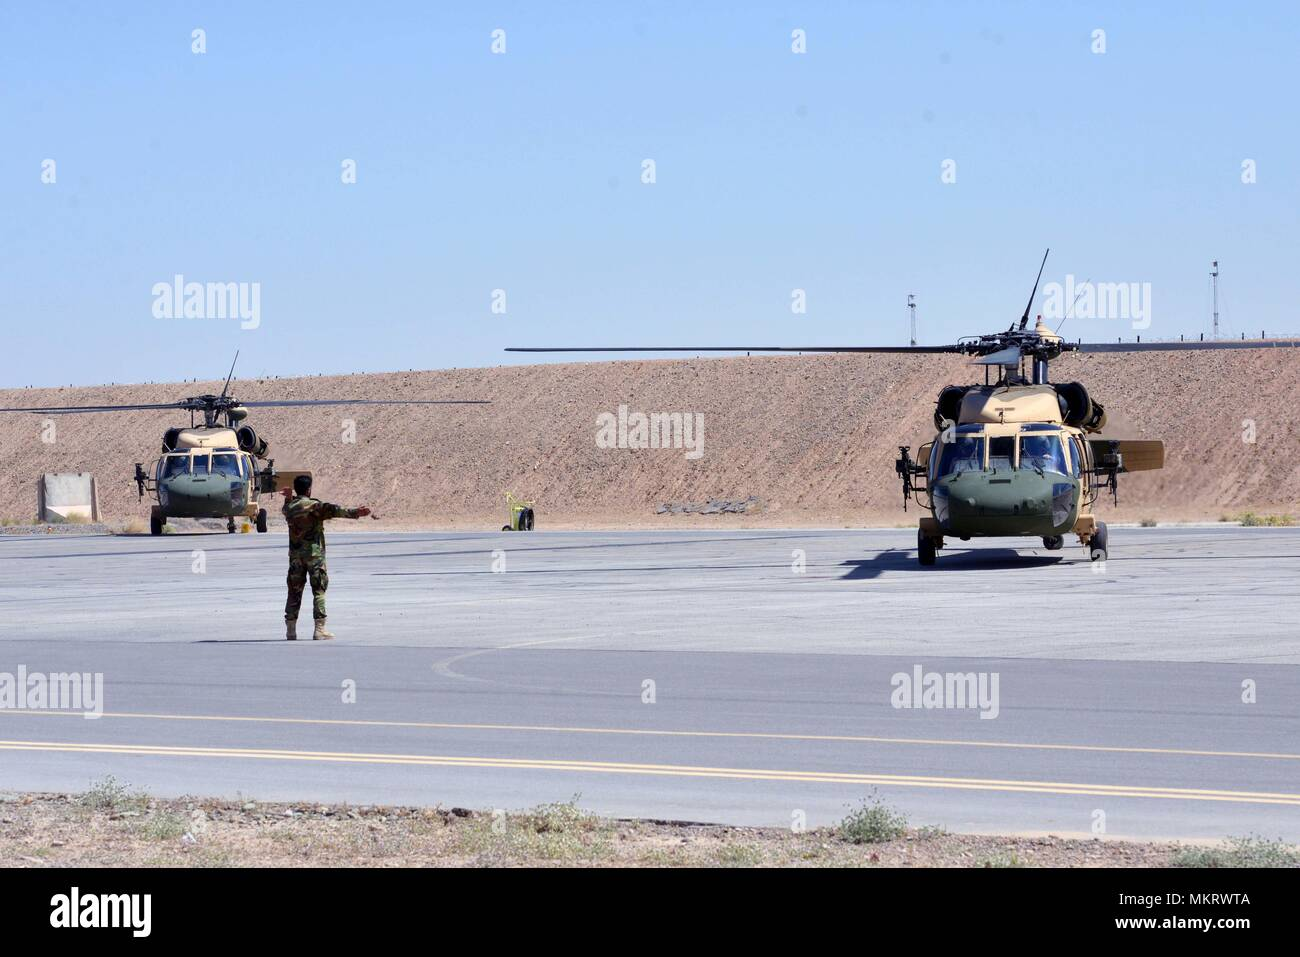 An Afghan Air Force member directs two UH-60 Blackhawks as they prepare to take off for the first Afghan-led operational mission on this aircraft May 8, 2018, Kandahar Air Field, Afghanistan, May 8, 2018. The mission, which was in support of the elections, occurred just one day after the crews graduated from Mission Qualification Training. (U.S. Air Force photo/1st Lt. Erin Recanzone). () - Stock Image